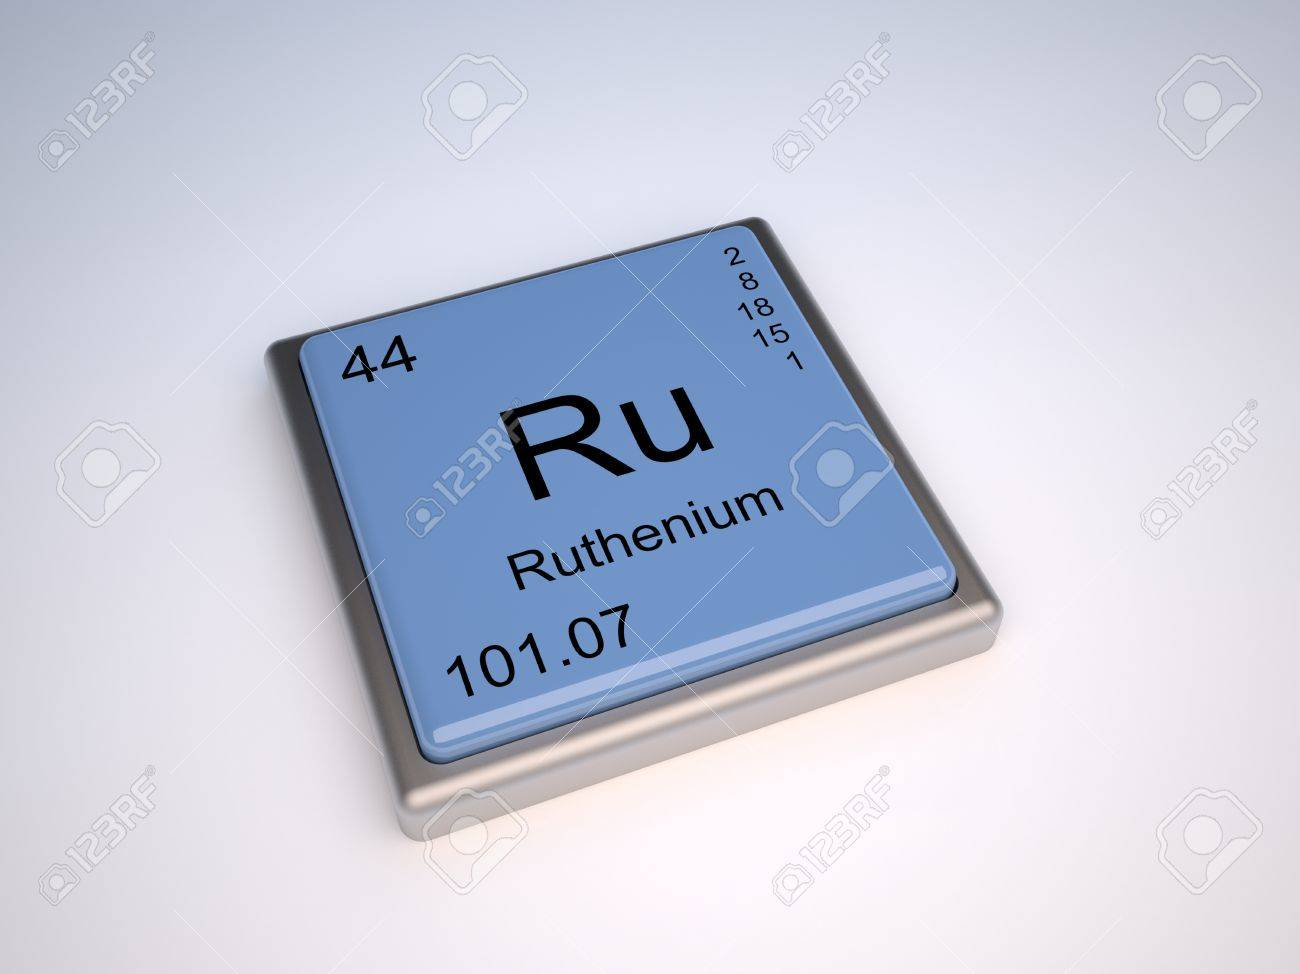 Ruthenium chemical element of the periodic table with symbol ruthenium chemical element of the periodic table with symbol ru stock photo 9257084 gamestrikefo Choice Image